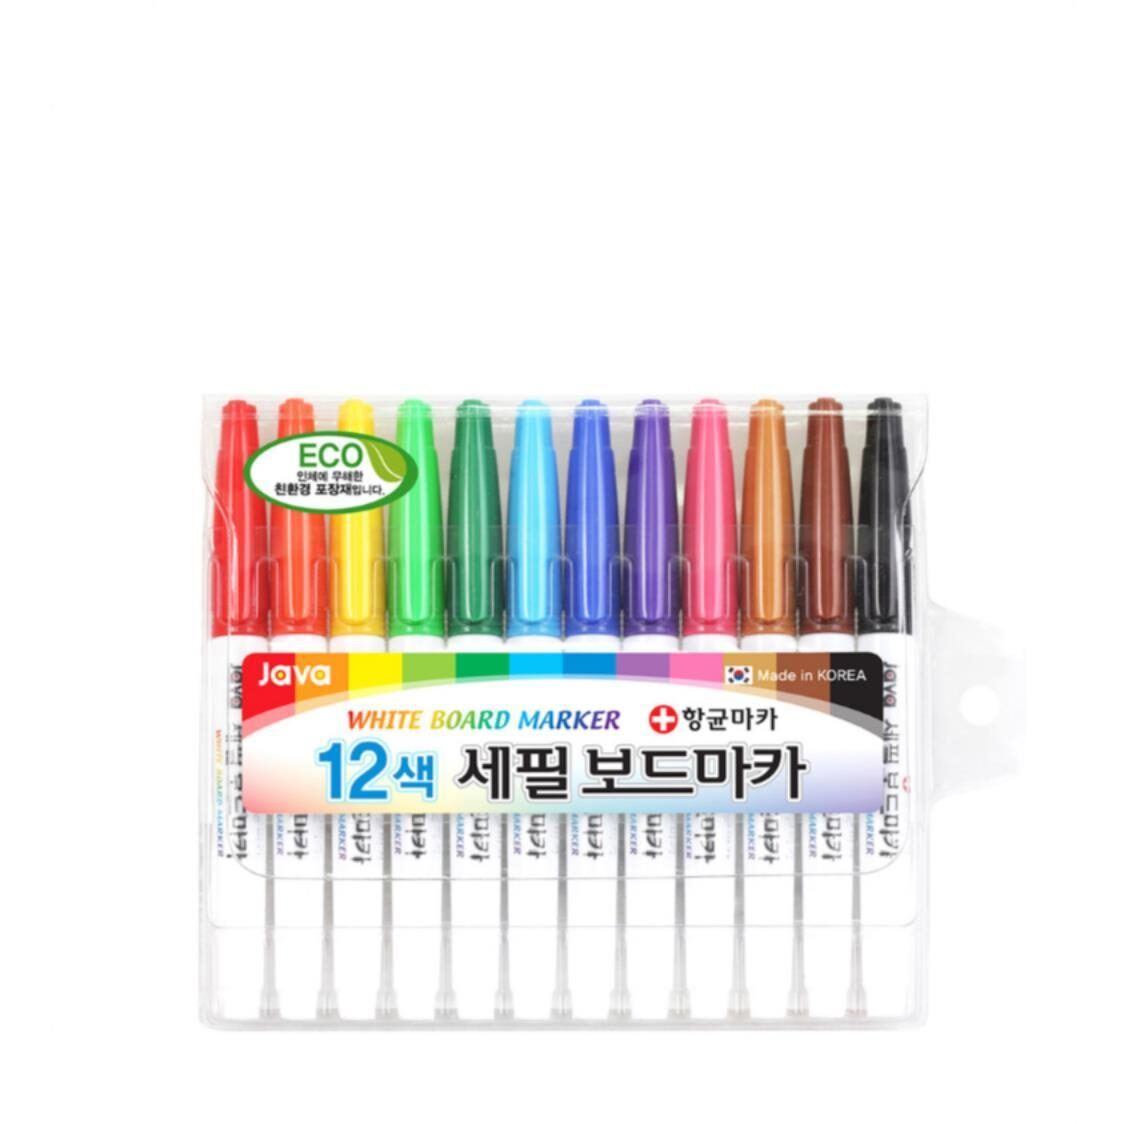 Java Pen Fine Whiteboard Marker Antibacterial